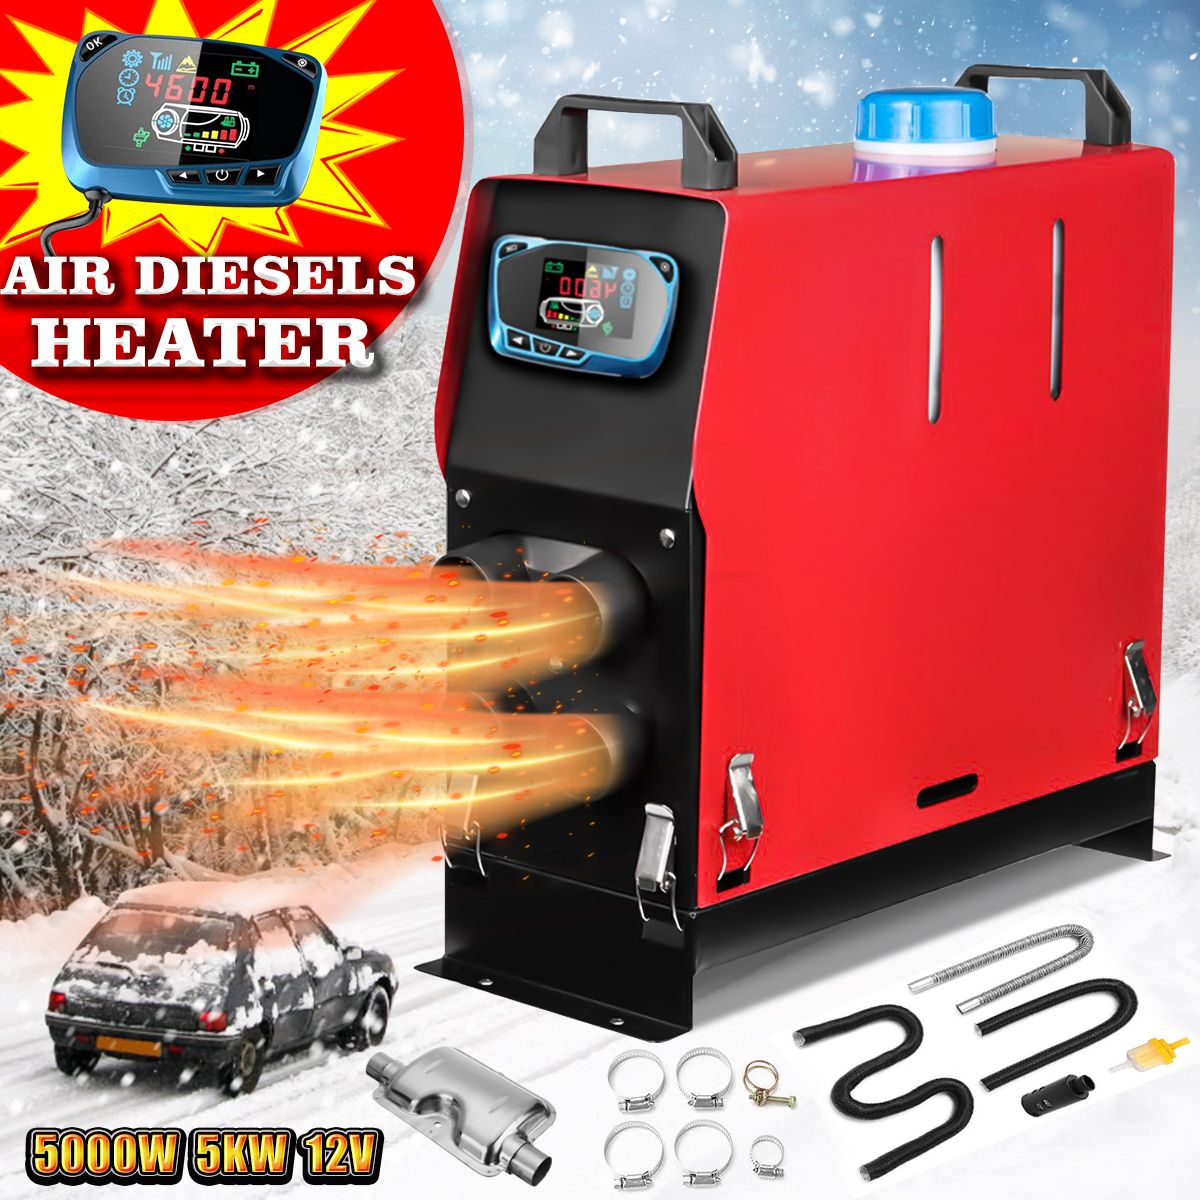 Car Heater 5KW 12VFor Trucks Motor-Homes Boats Bus +Newest LCD key Switch +Silencer 5000W Air Diesels Heater